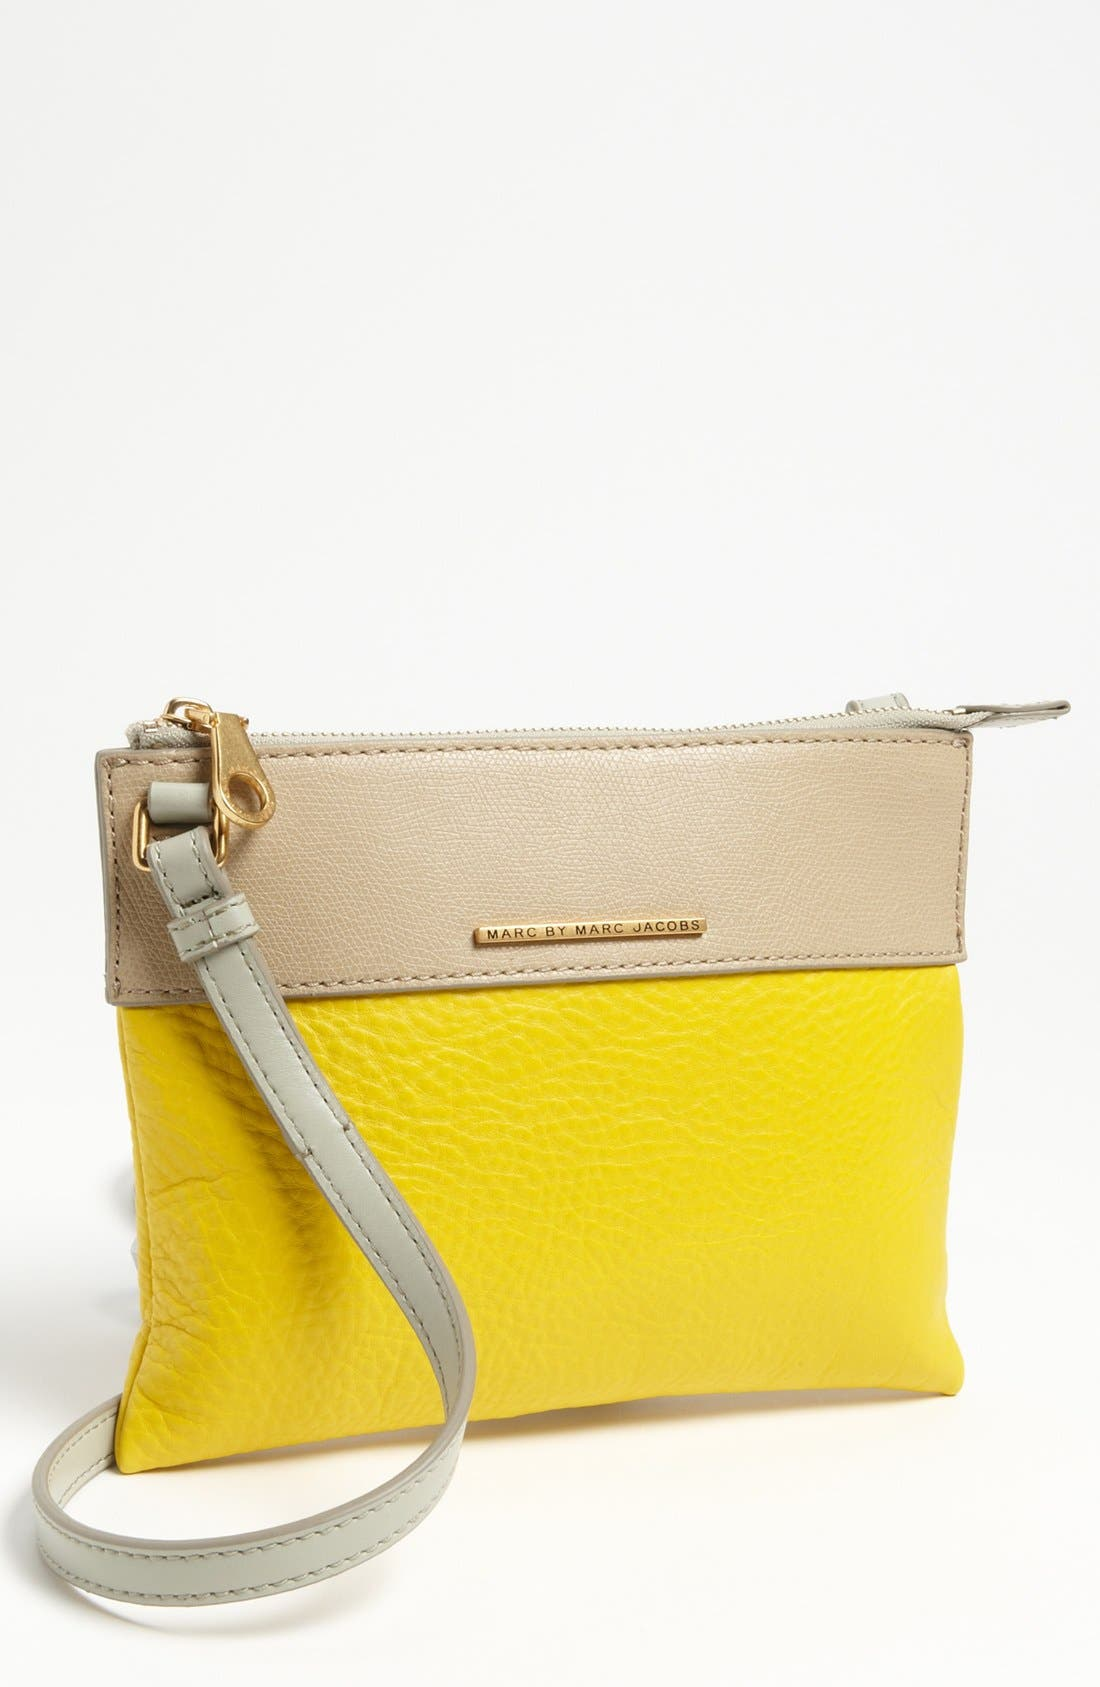 Main Image - MARC BY MARC JACOBS 'Sheltered Island - Percy' Colorblock Leather Crossbody Bag, Small